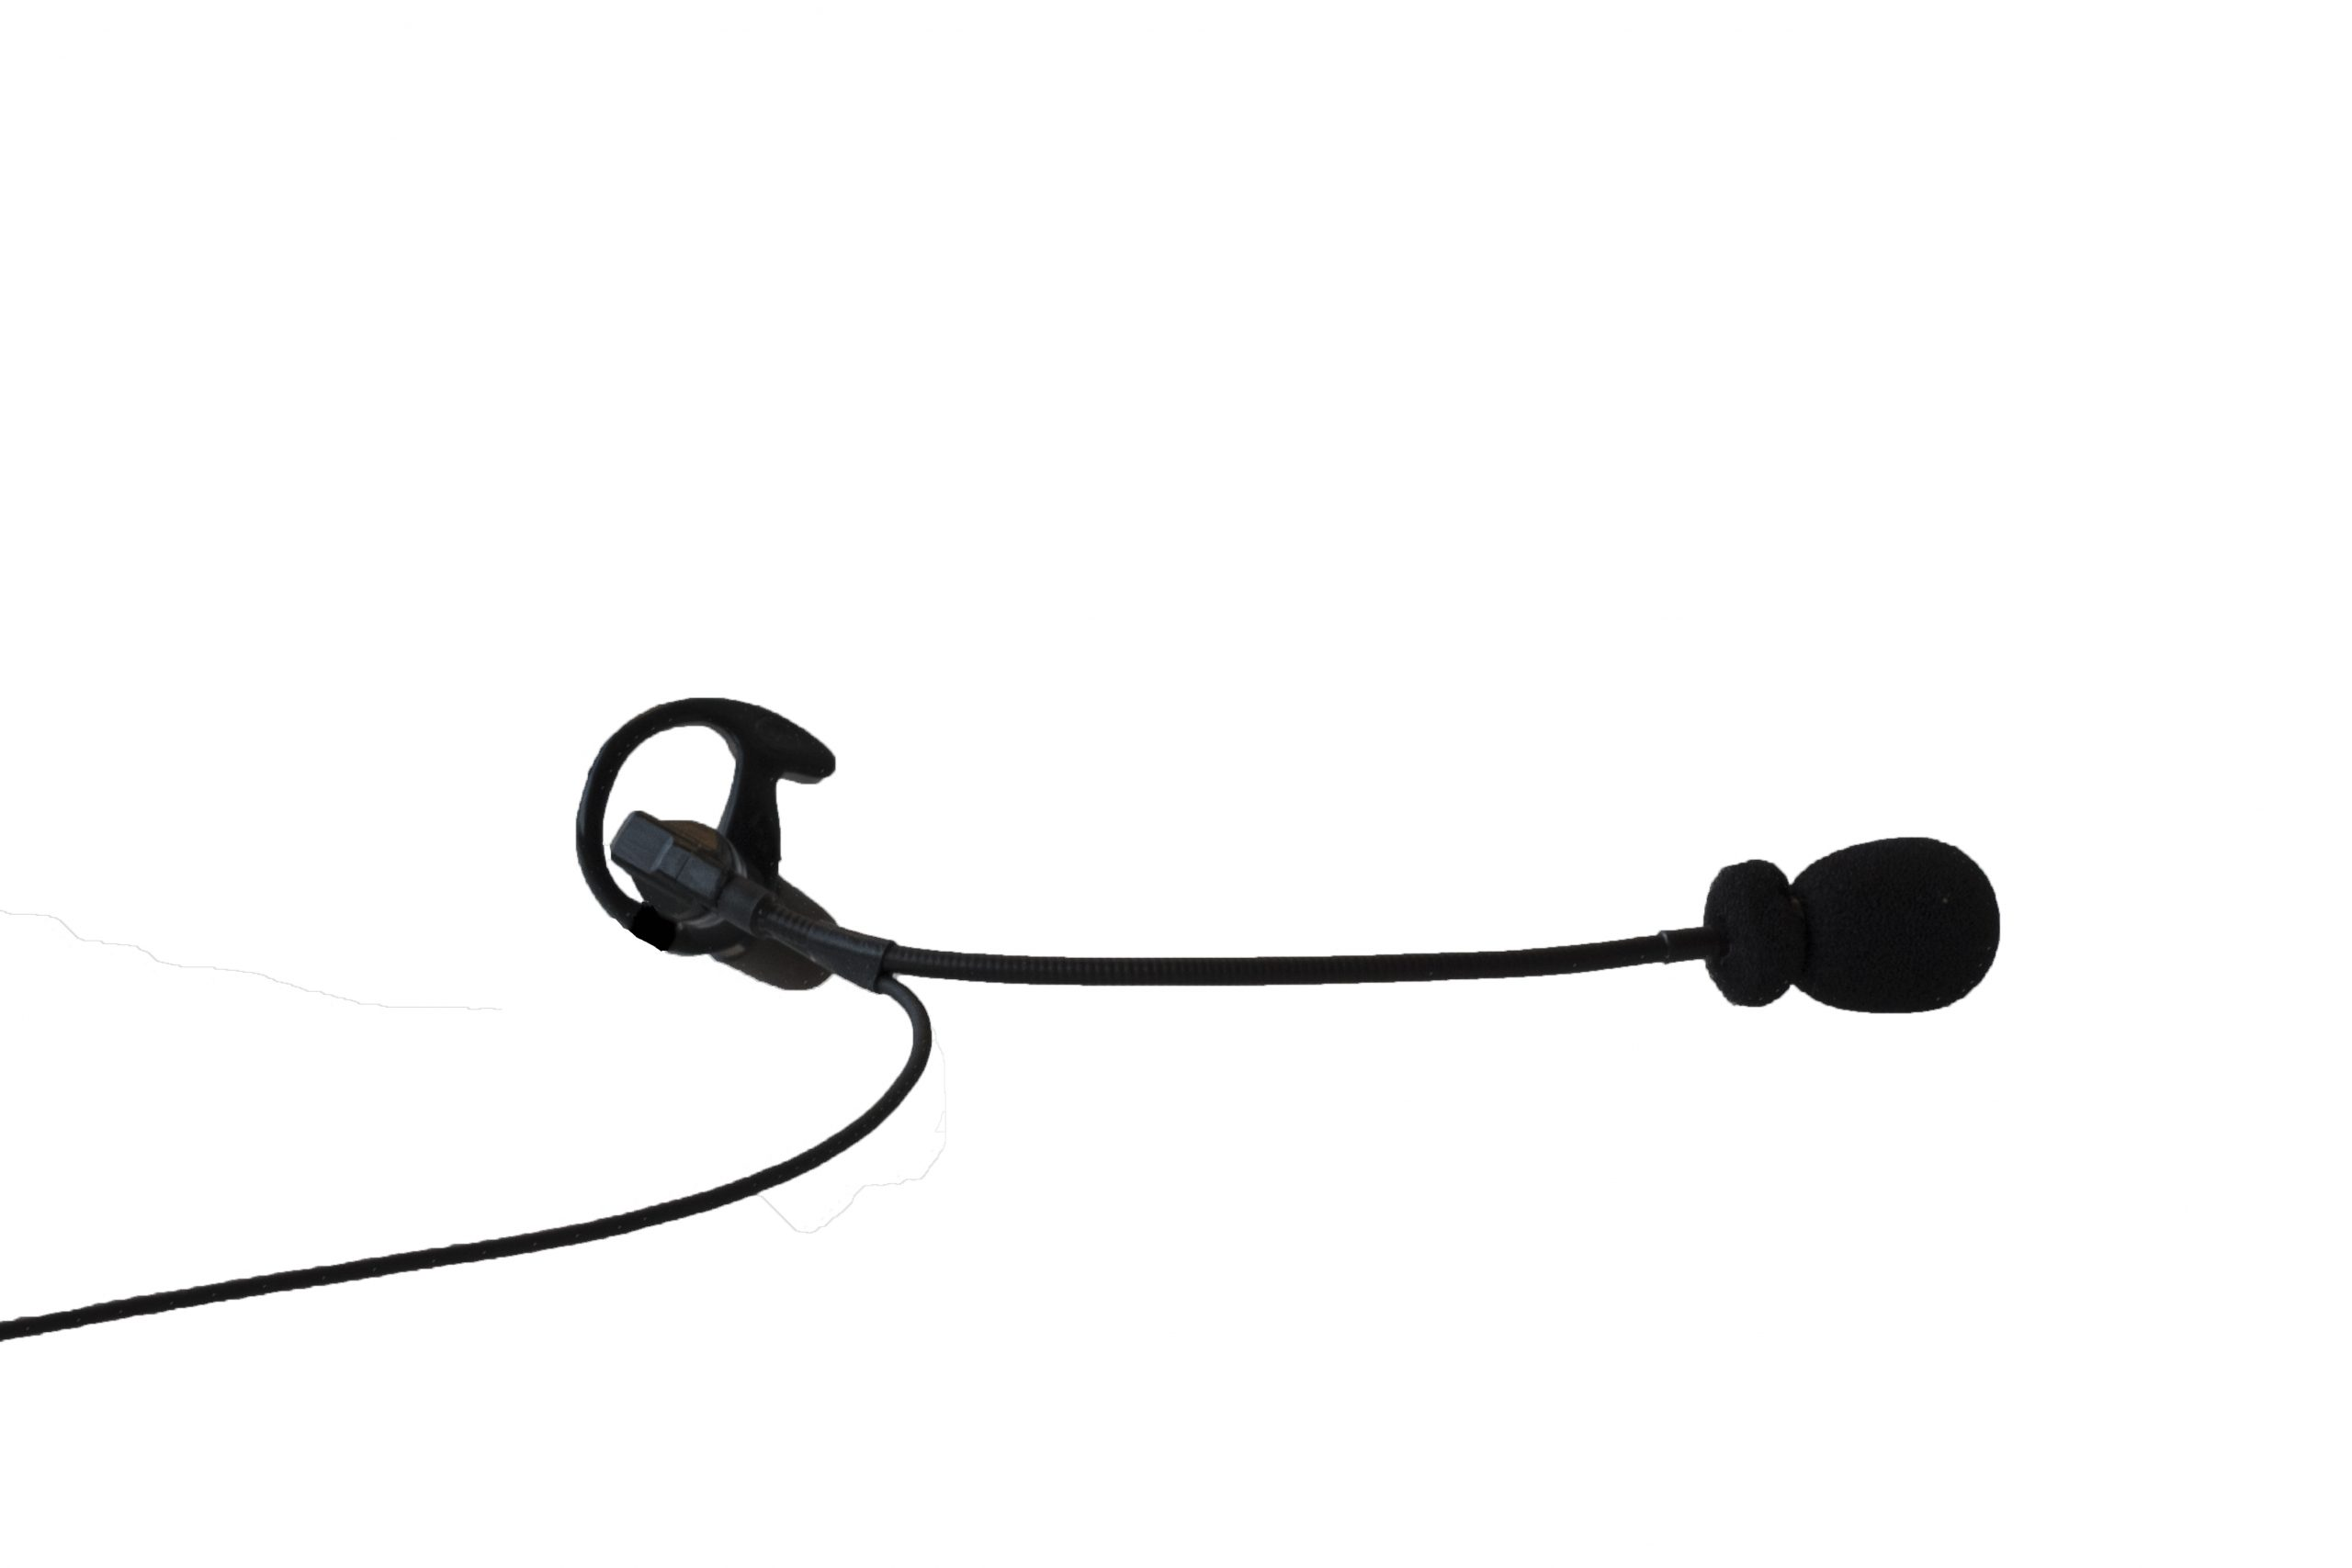 axiwi-he-050-headset-universal- earpiece